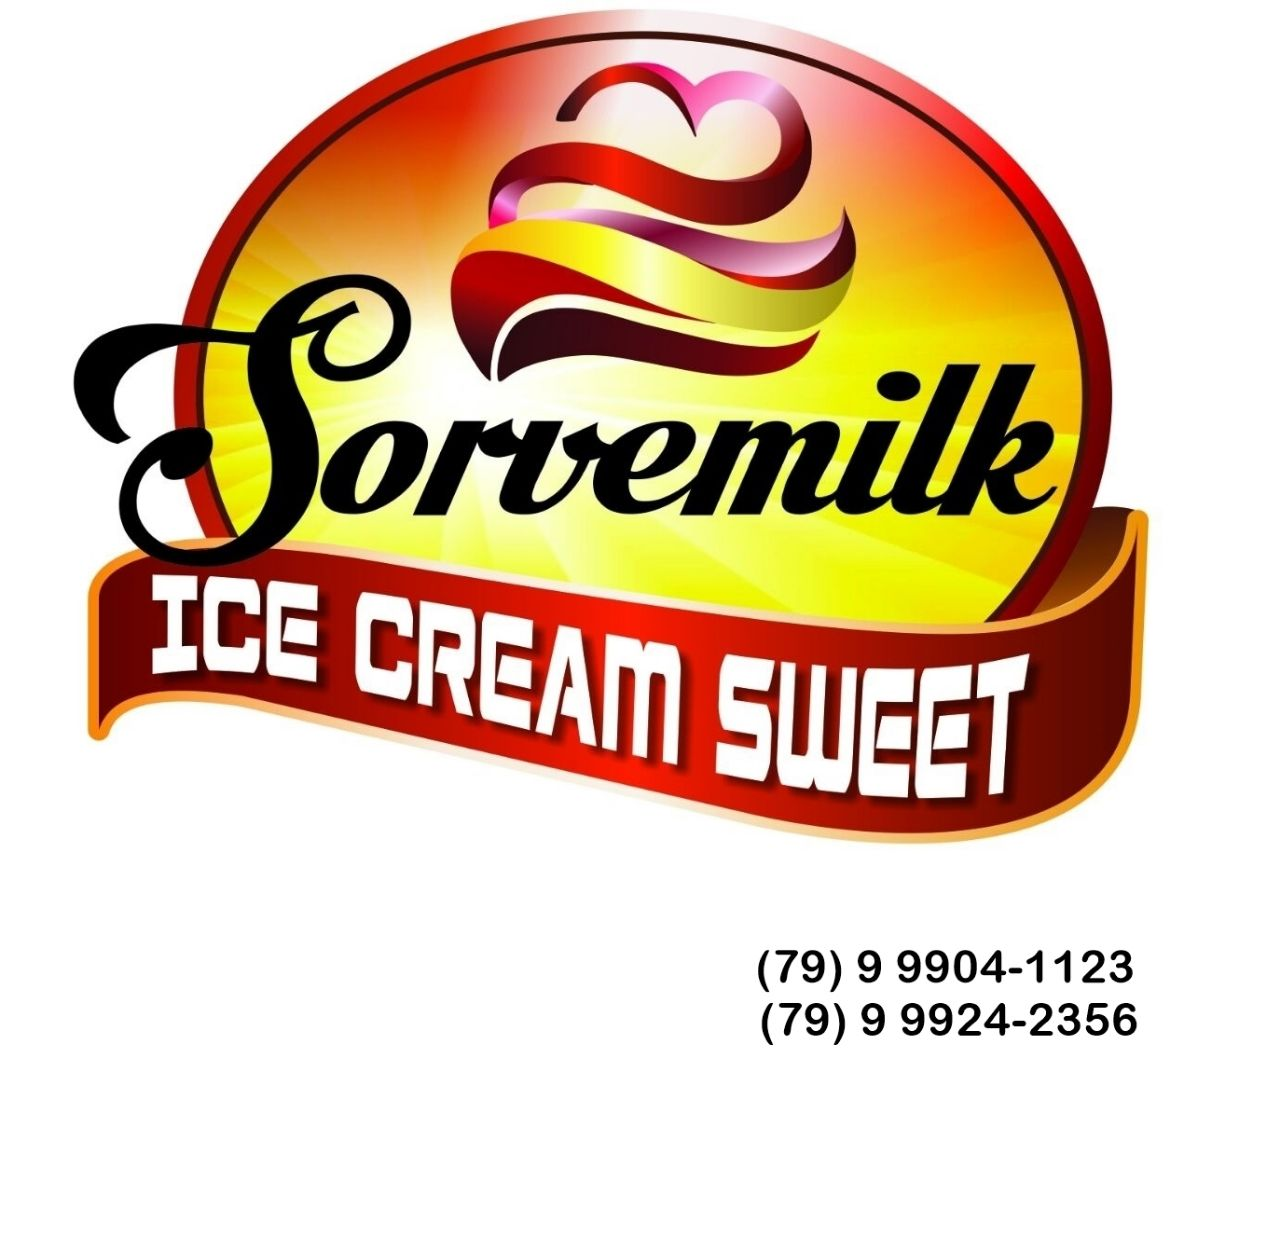 SORVEMILK! ICE CREAM SWEET